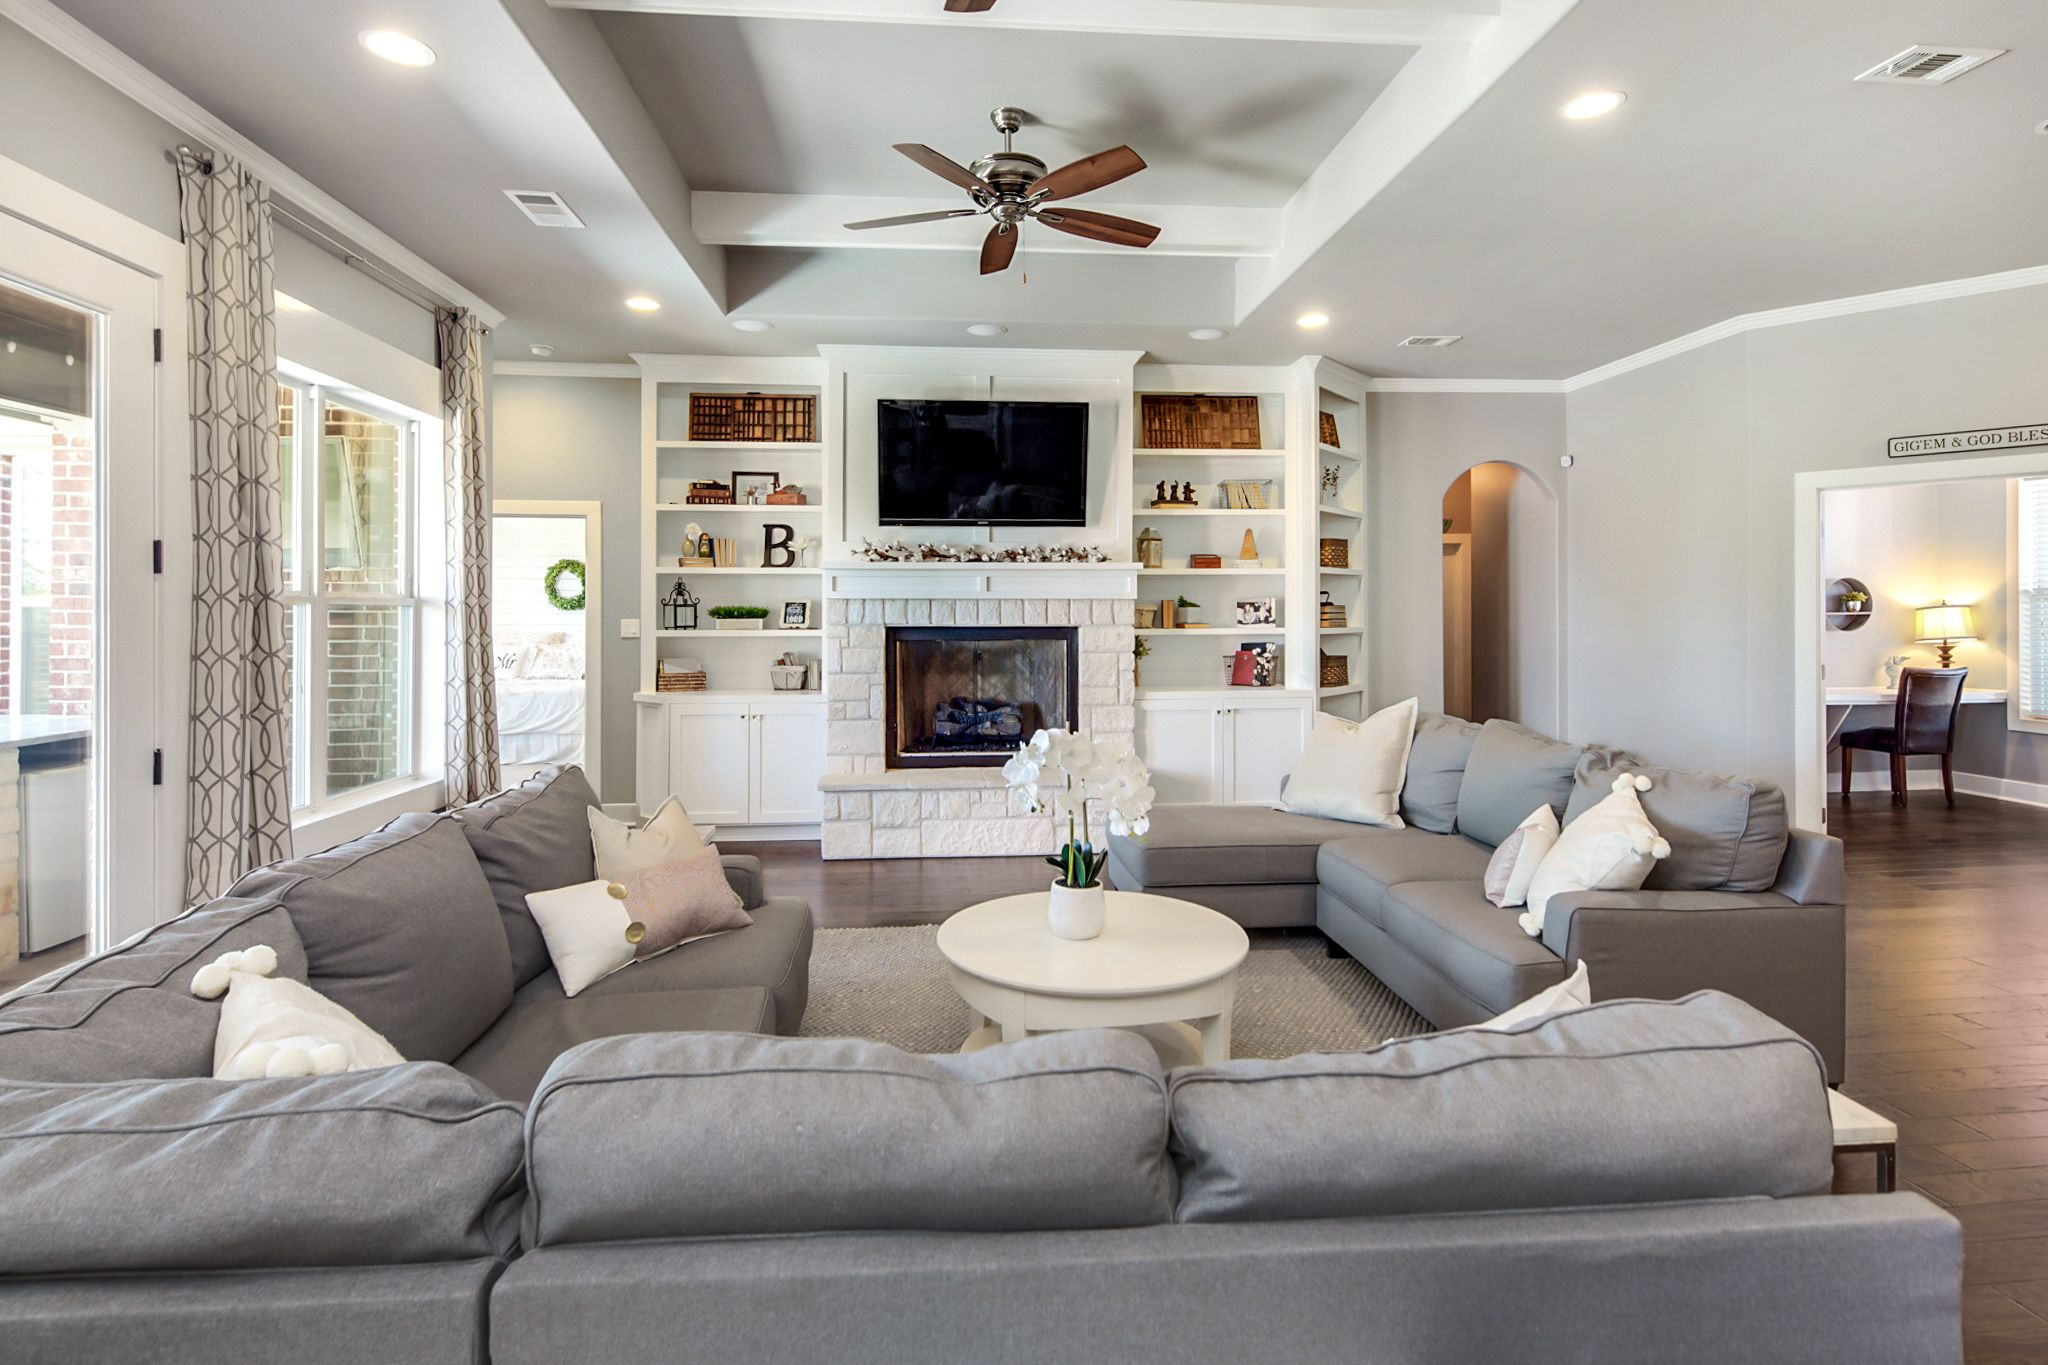 Living Room Built Ins Floor Length Curtains White Ceiling Beams Grey Walls Large Grey Sectio Ceiling Beams Living Room Living Room Styles Beams Living Room #olsberg #steel #living #room #set